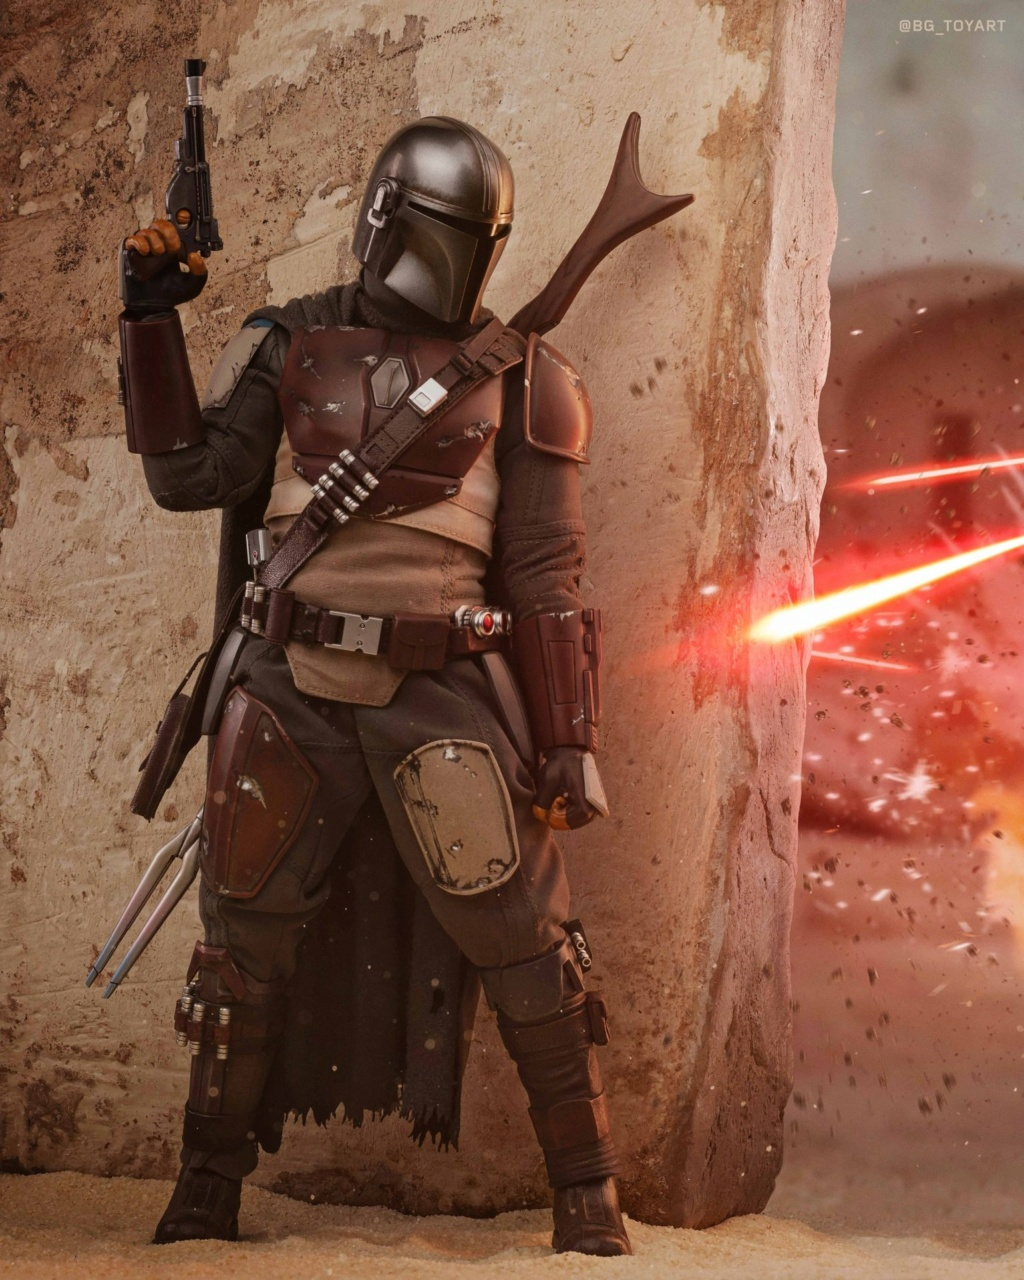 NEW PRODUCT: HOT TOYS: THE MANDALORIAN -- THE MANDALORIAN 1/6TH SCALE COLLECTIBLE FIGURE 5367